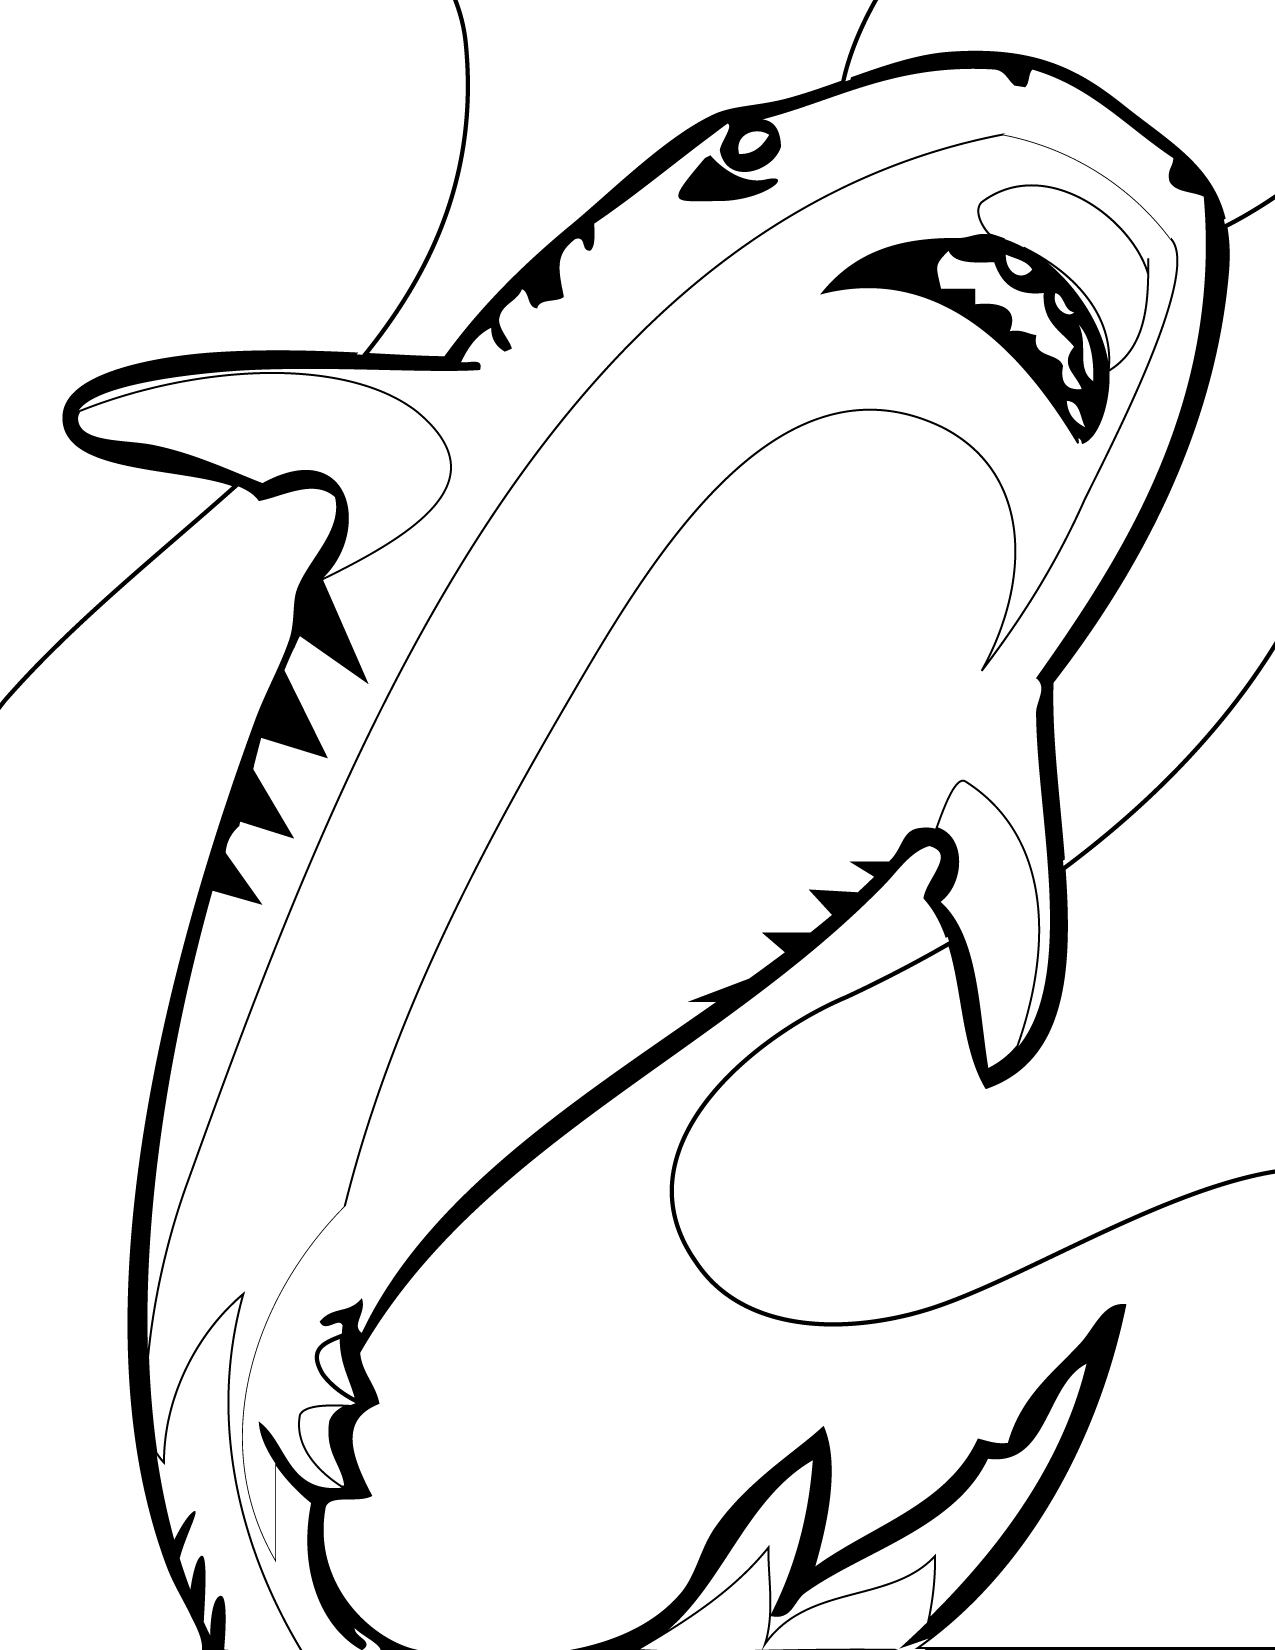 Uncategorized Hammerhead Shark Coloring Pages tiger shark coloring page handipoints shark